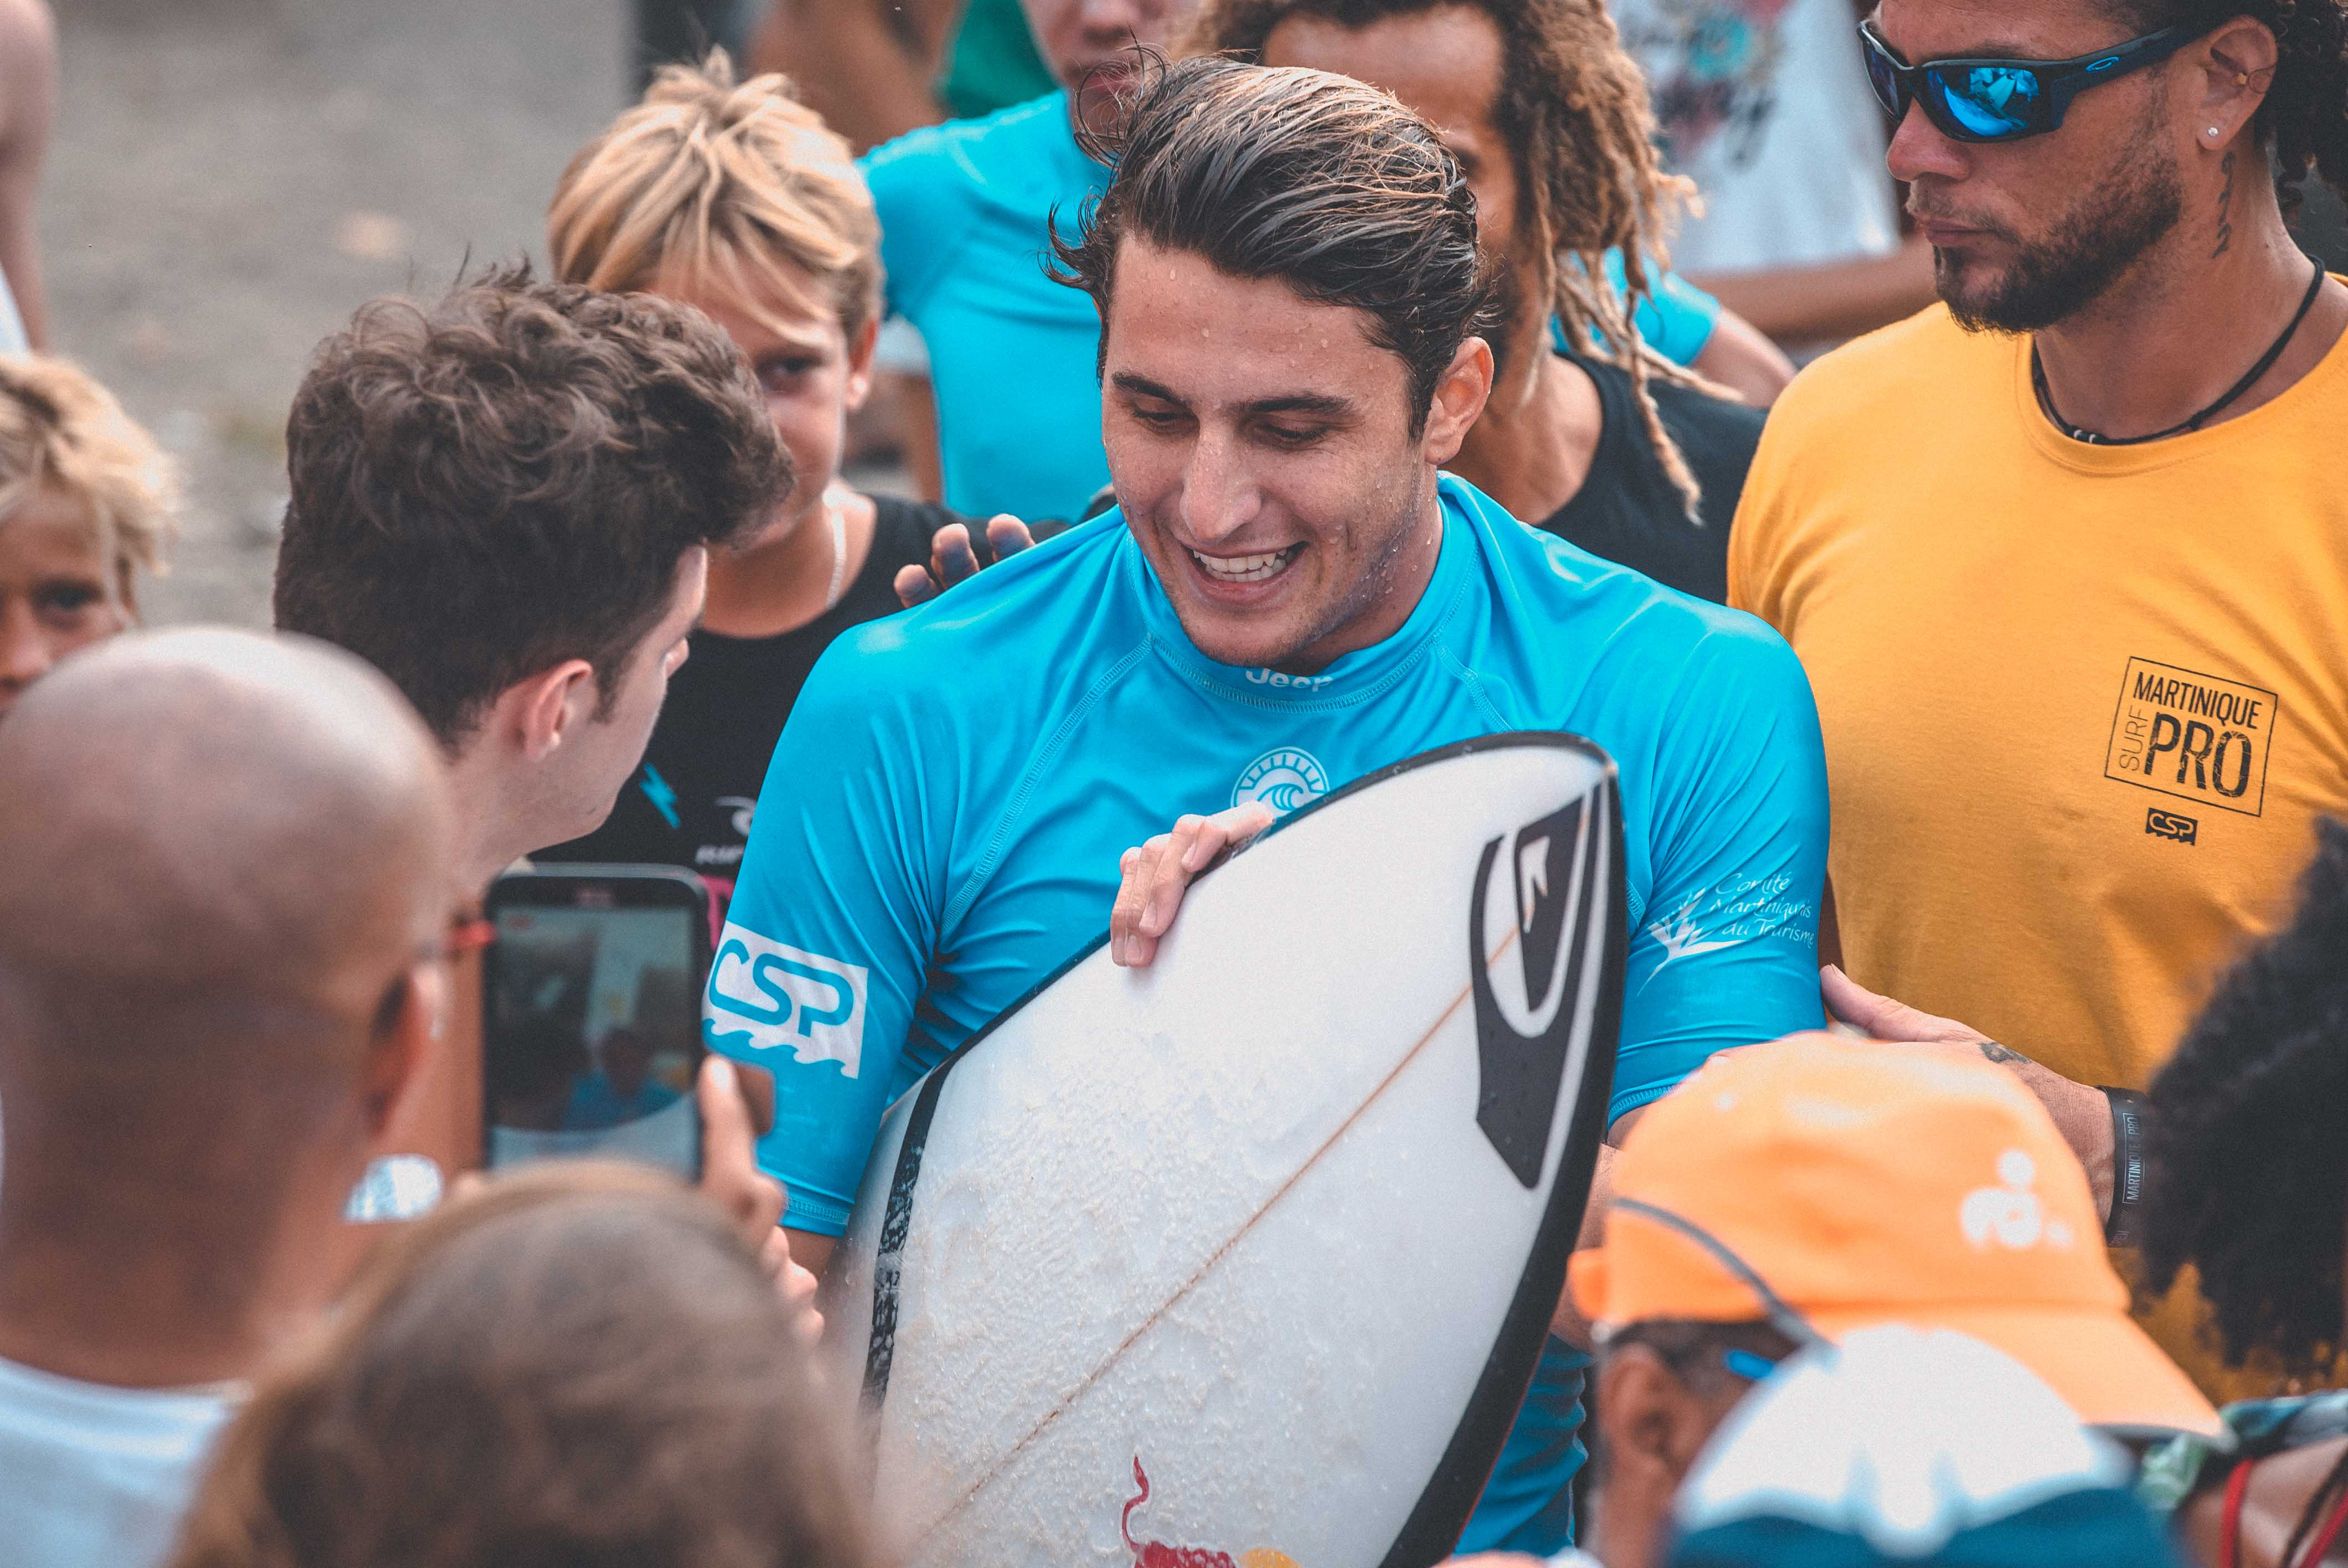 Martinique Surf Pro 2018 Winner